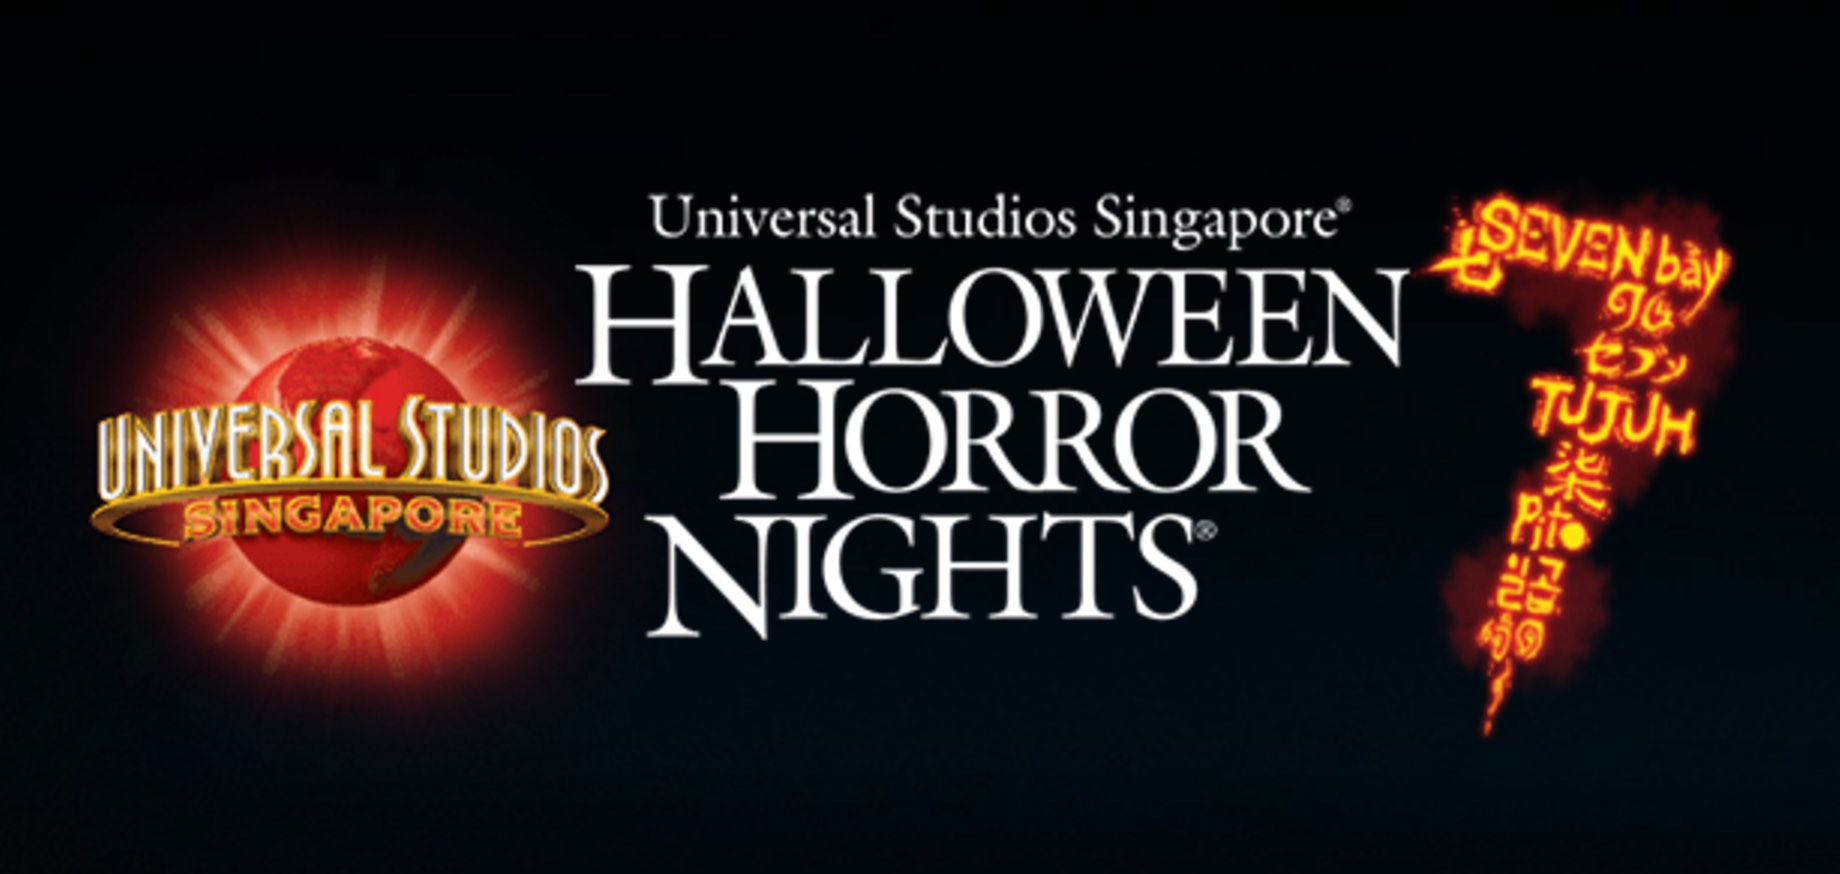 a standard event ticket costs s68 tickets are available online at www halloweenhorrornightscomsg and at universal studios singapore ticket booths - Halloween Horror Nights Free Tickets